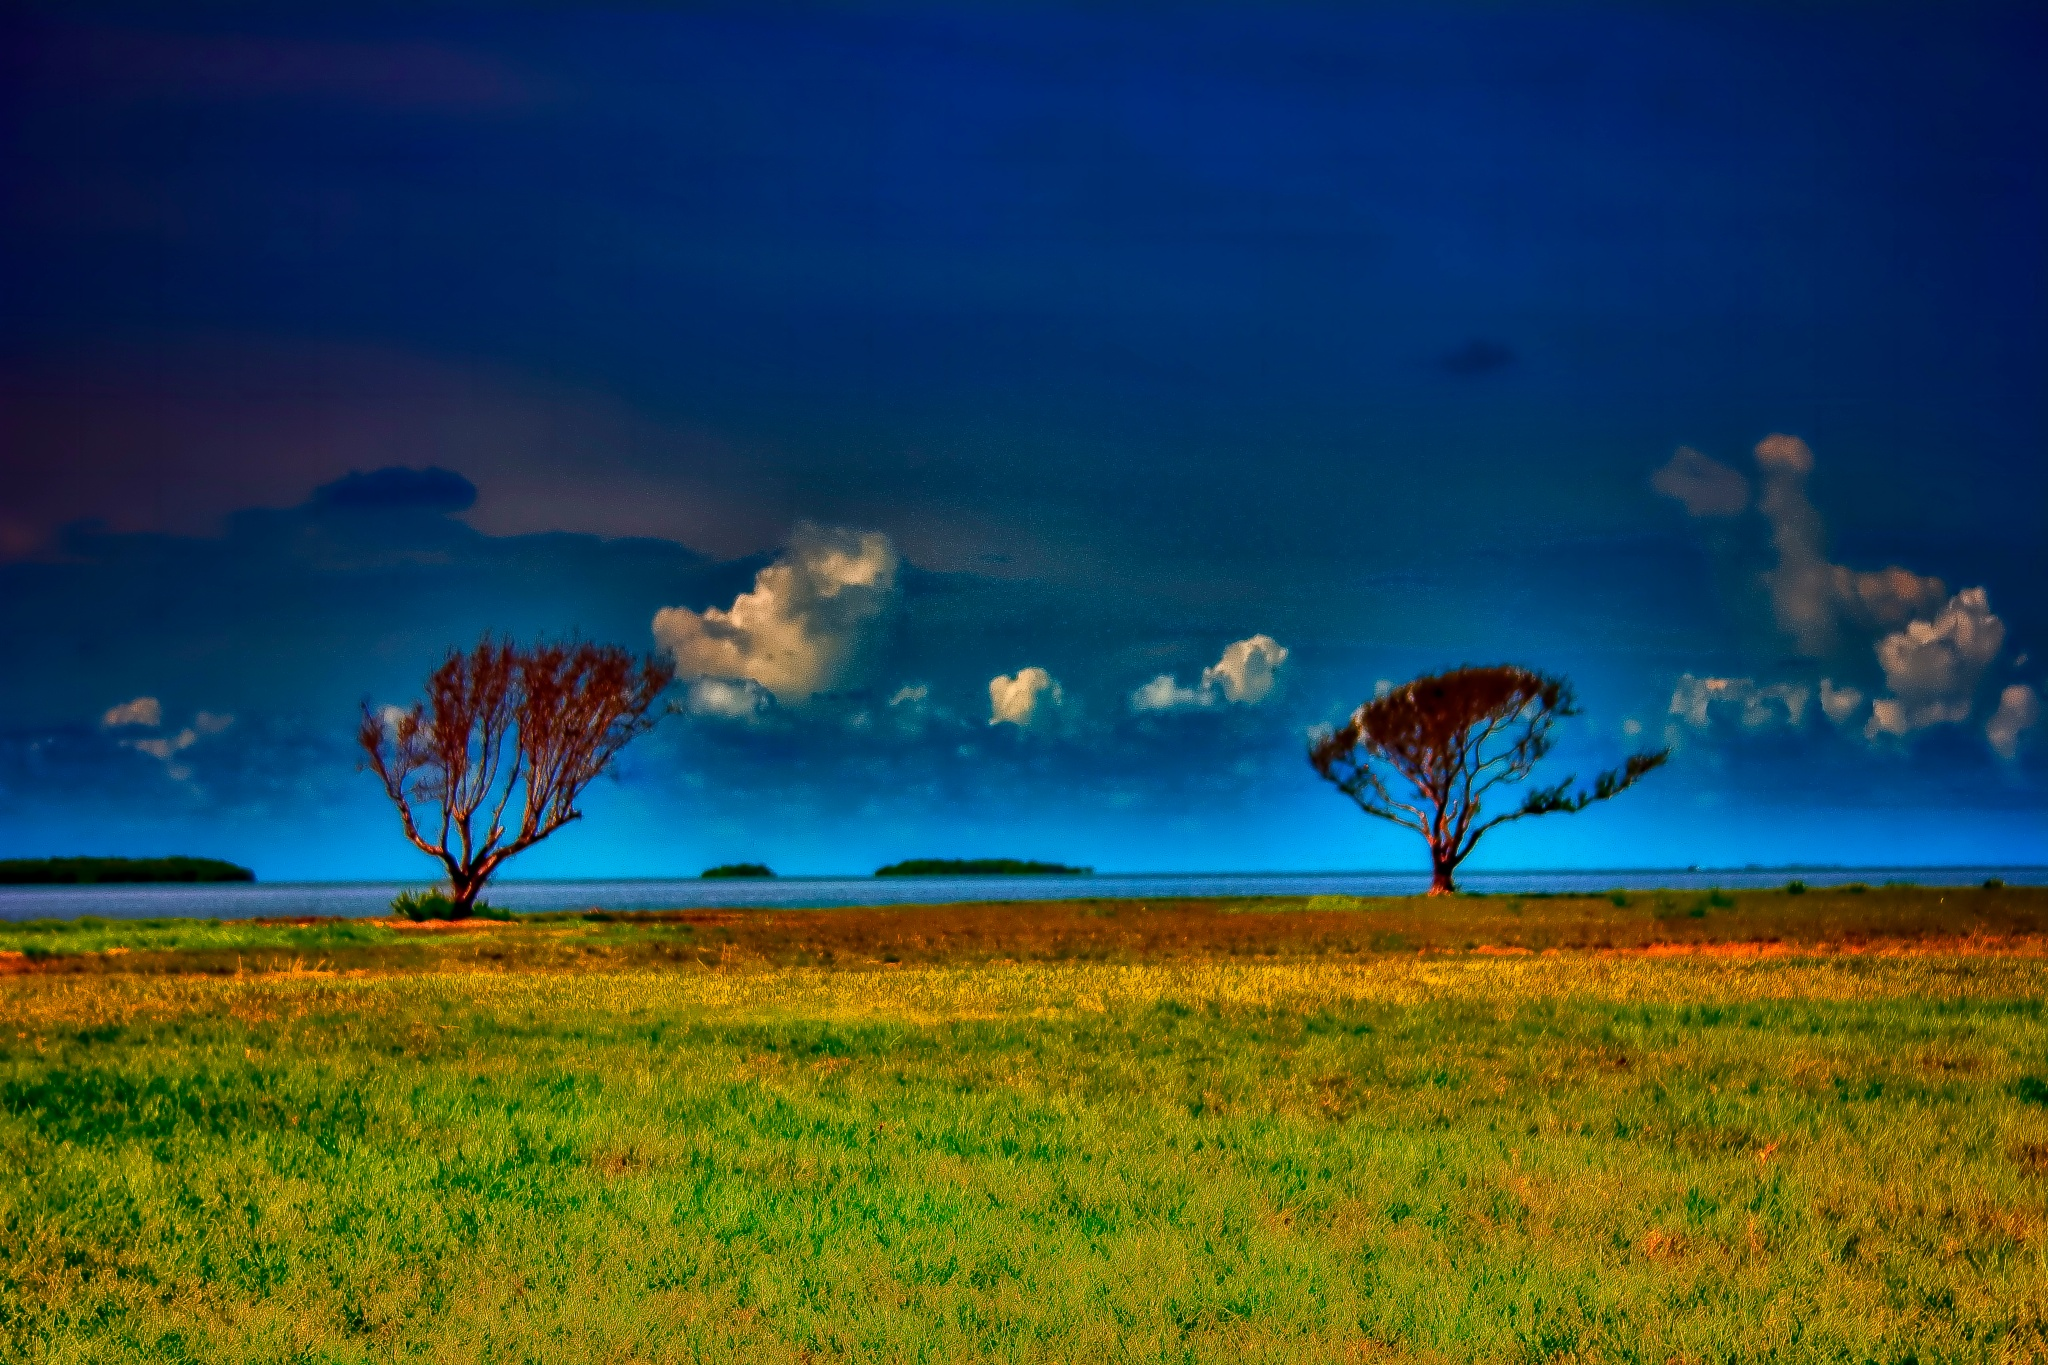 Twin Trees & The Florida Bay  by Mick Swengrosh